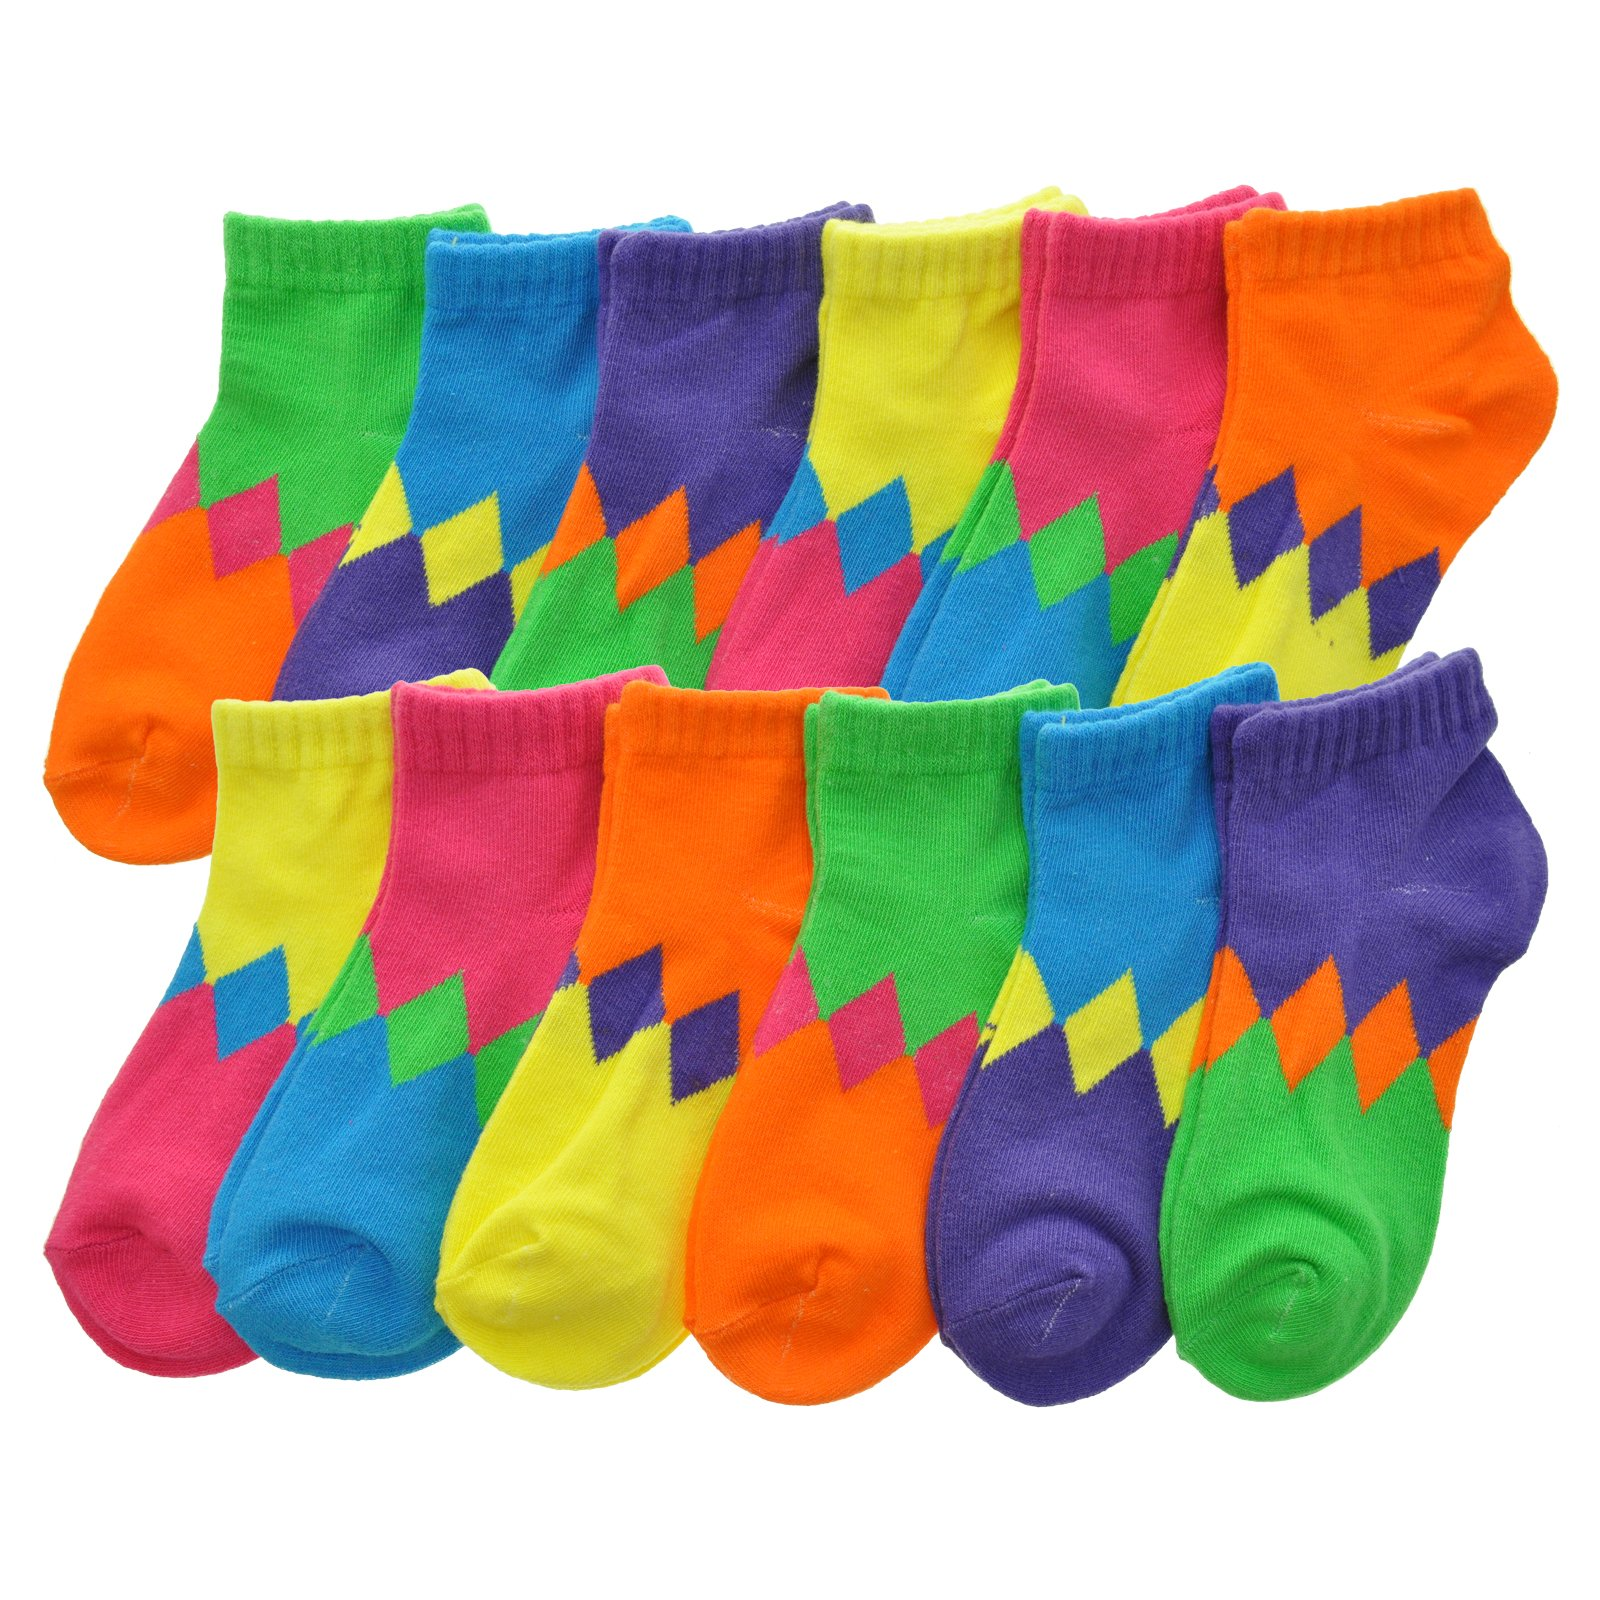 Angelina Cotton Low Cut Trainer Socks (12-Pack), 2305_DCO_6-8